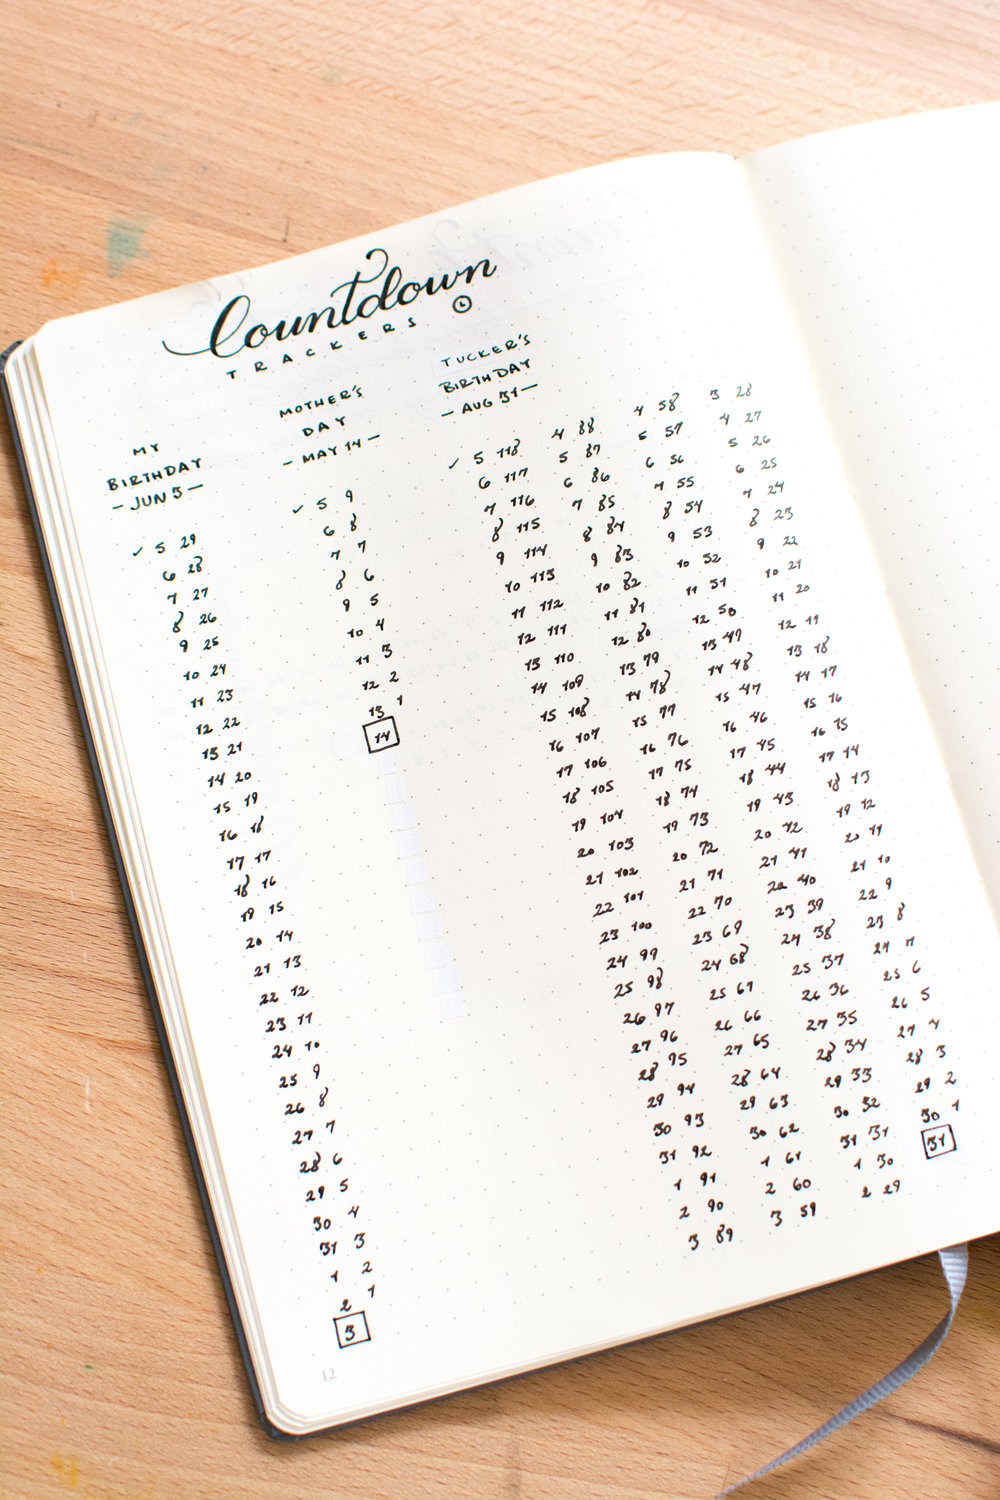 Keep track of important events in your life with a Countdown Tracker in your Bullet Journal